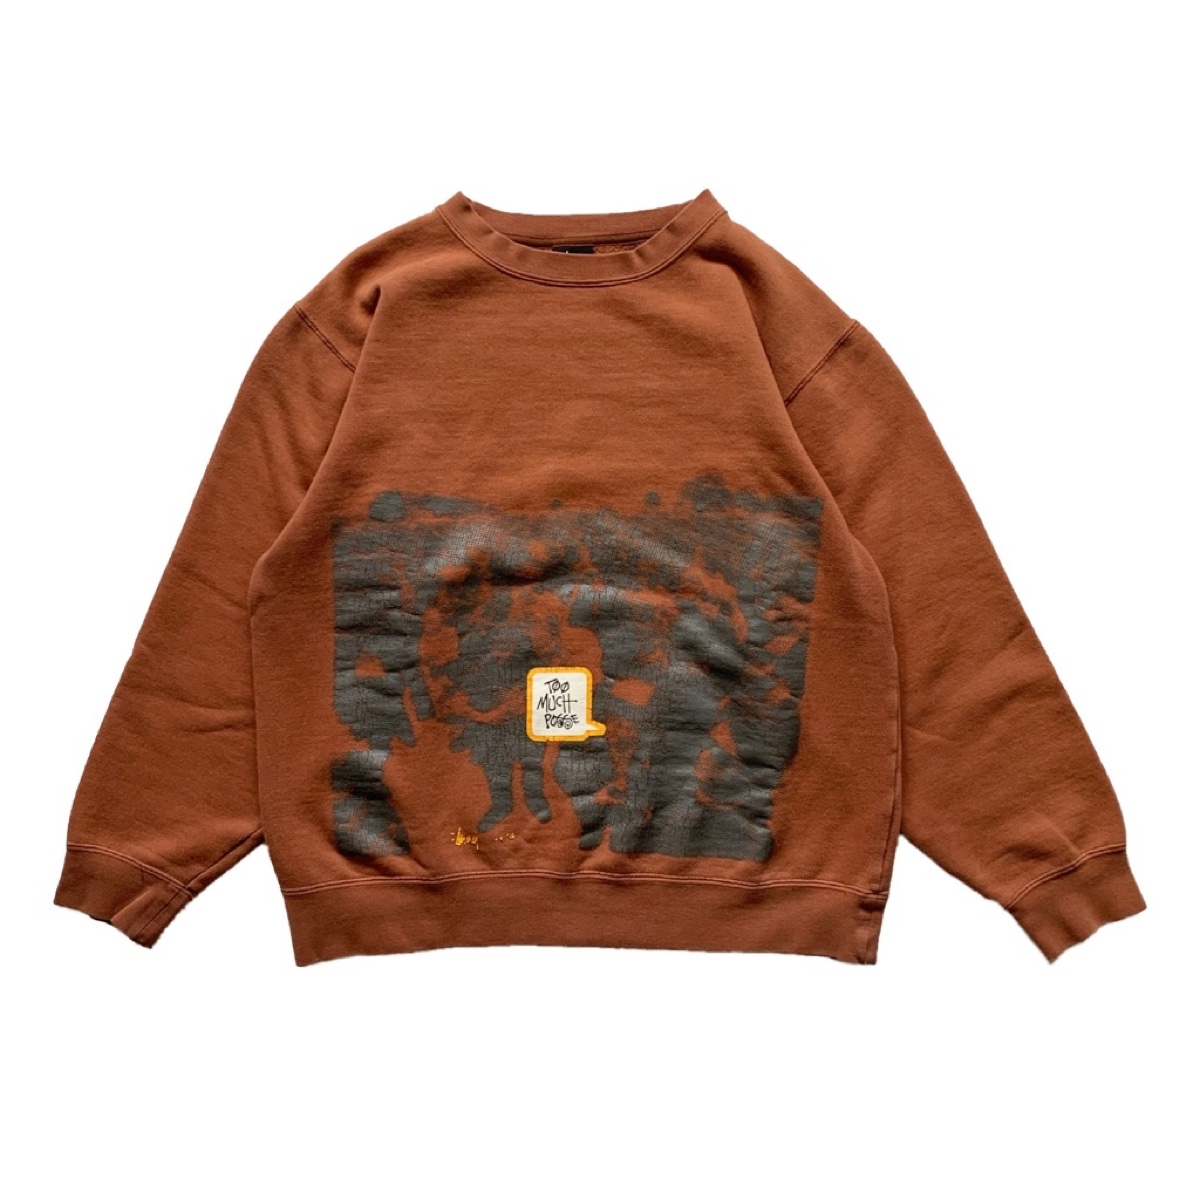 Vintage Stussy Too Much Posse Crewneck